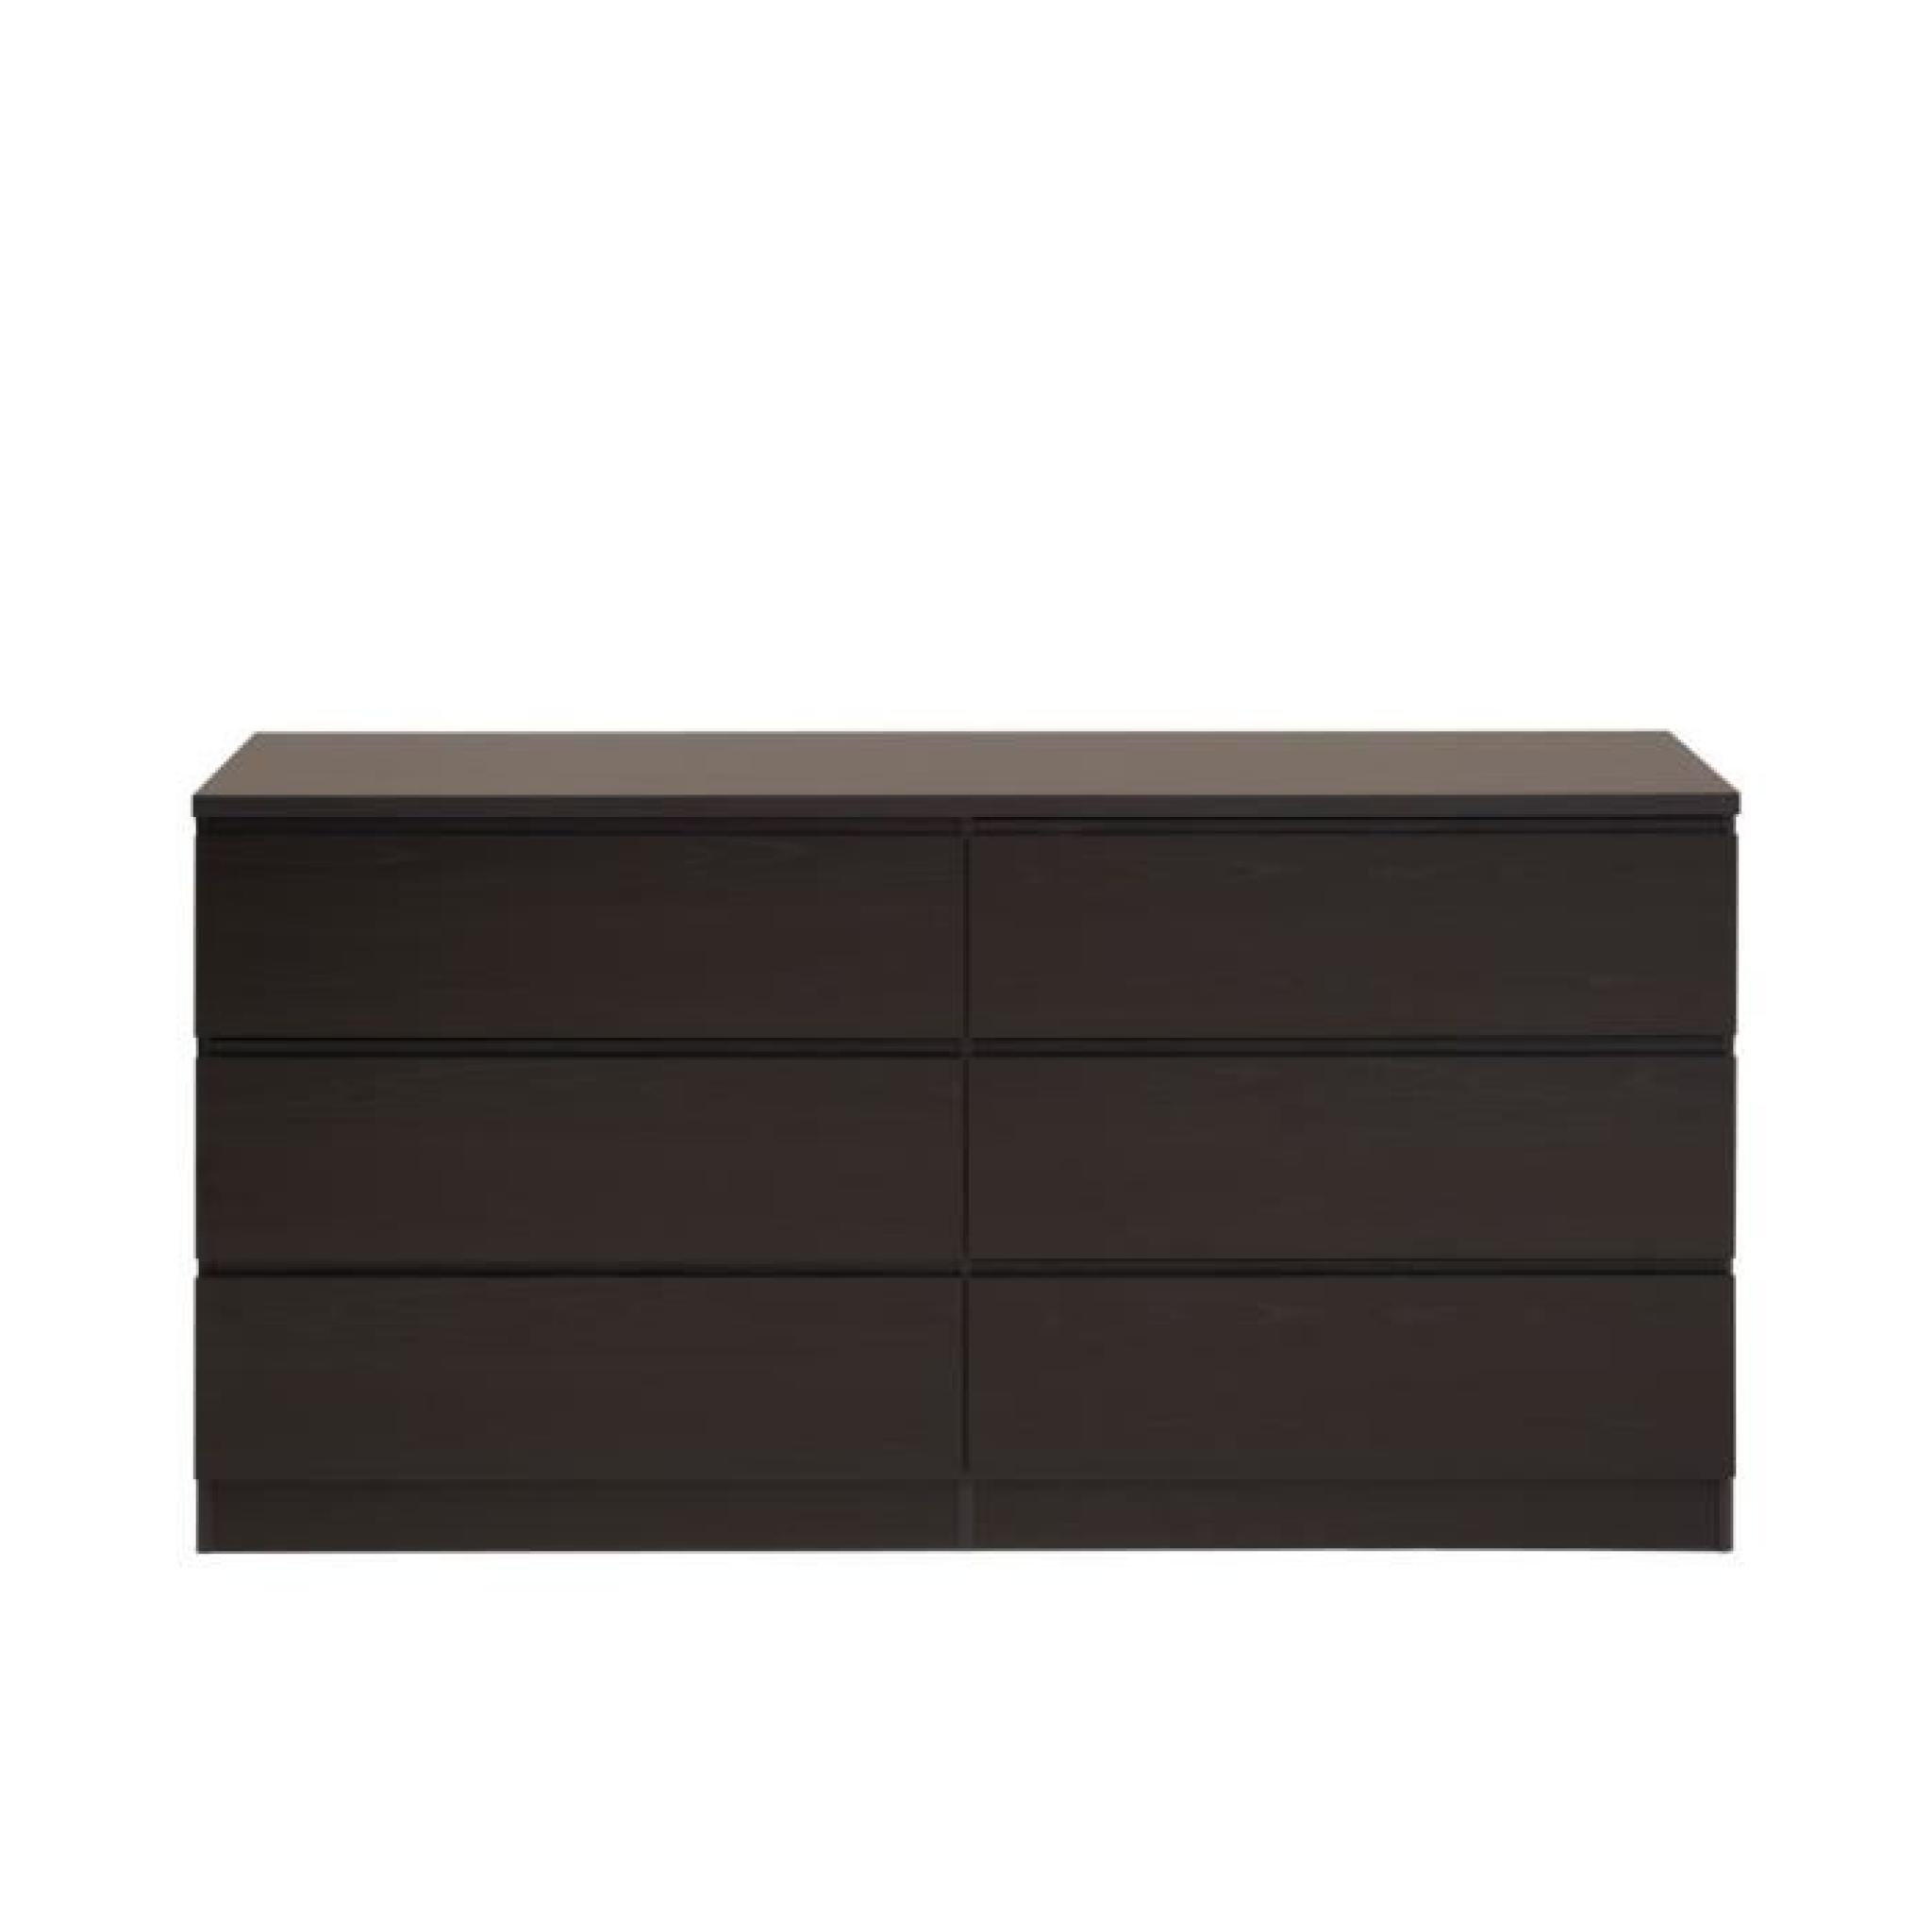 affordable fabulous commode armance tiroirs coloris weng. Black Bedroom Furniture Sets. Home Design Ideas